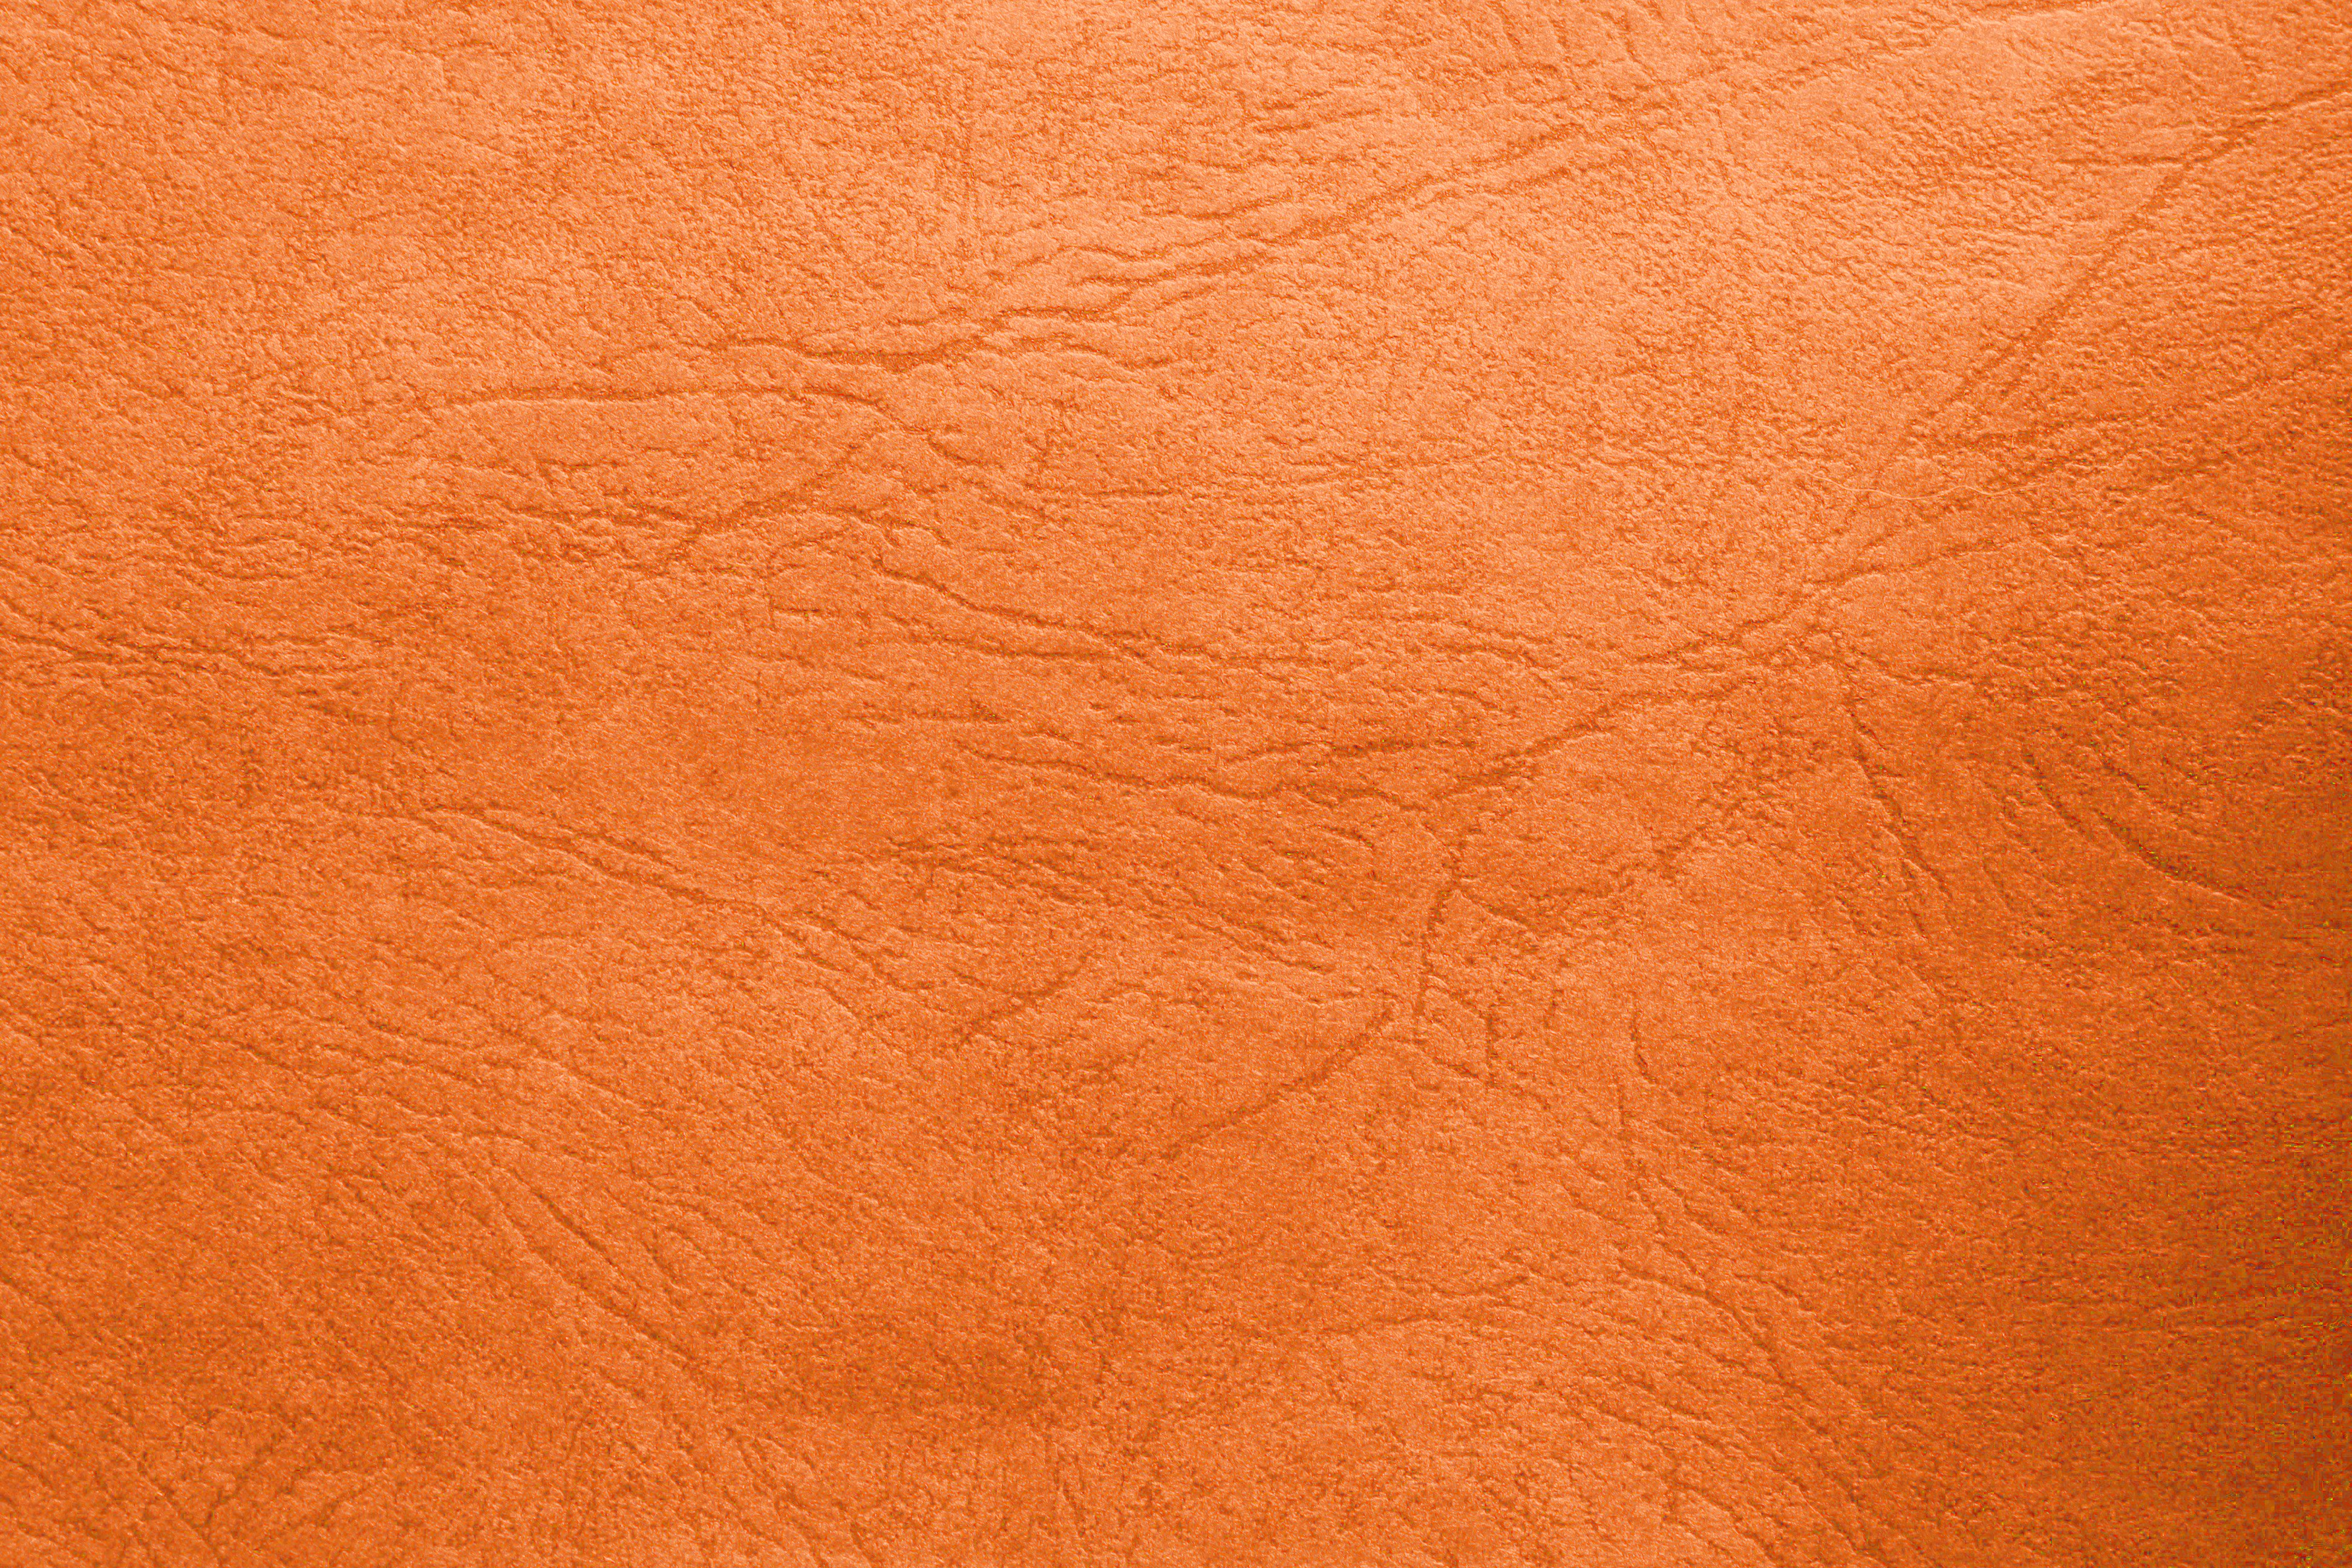 Orange Leather Texture - Free High Resolution Photo - Dimensions: 3888 ...